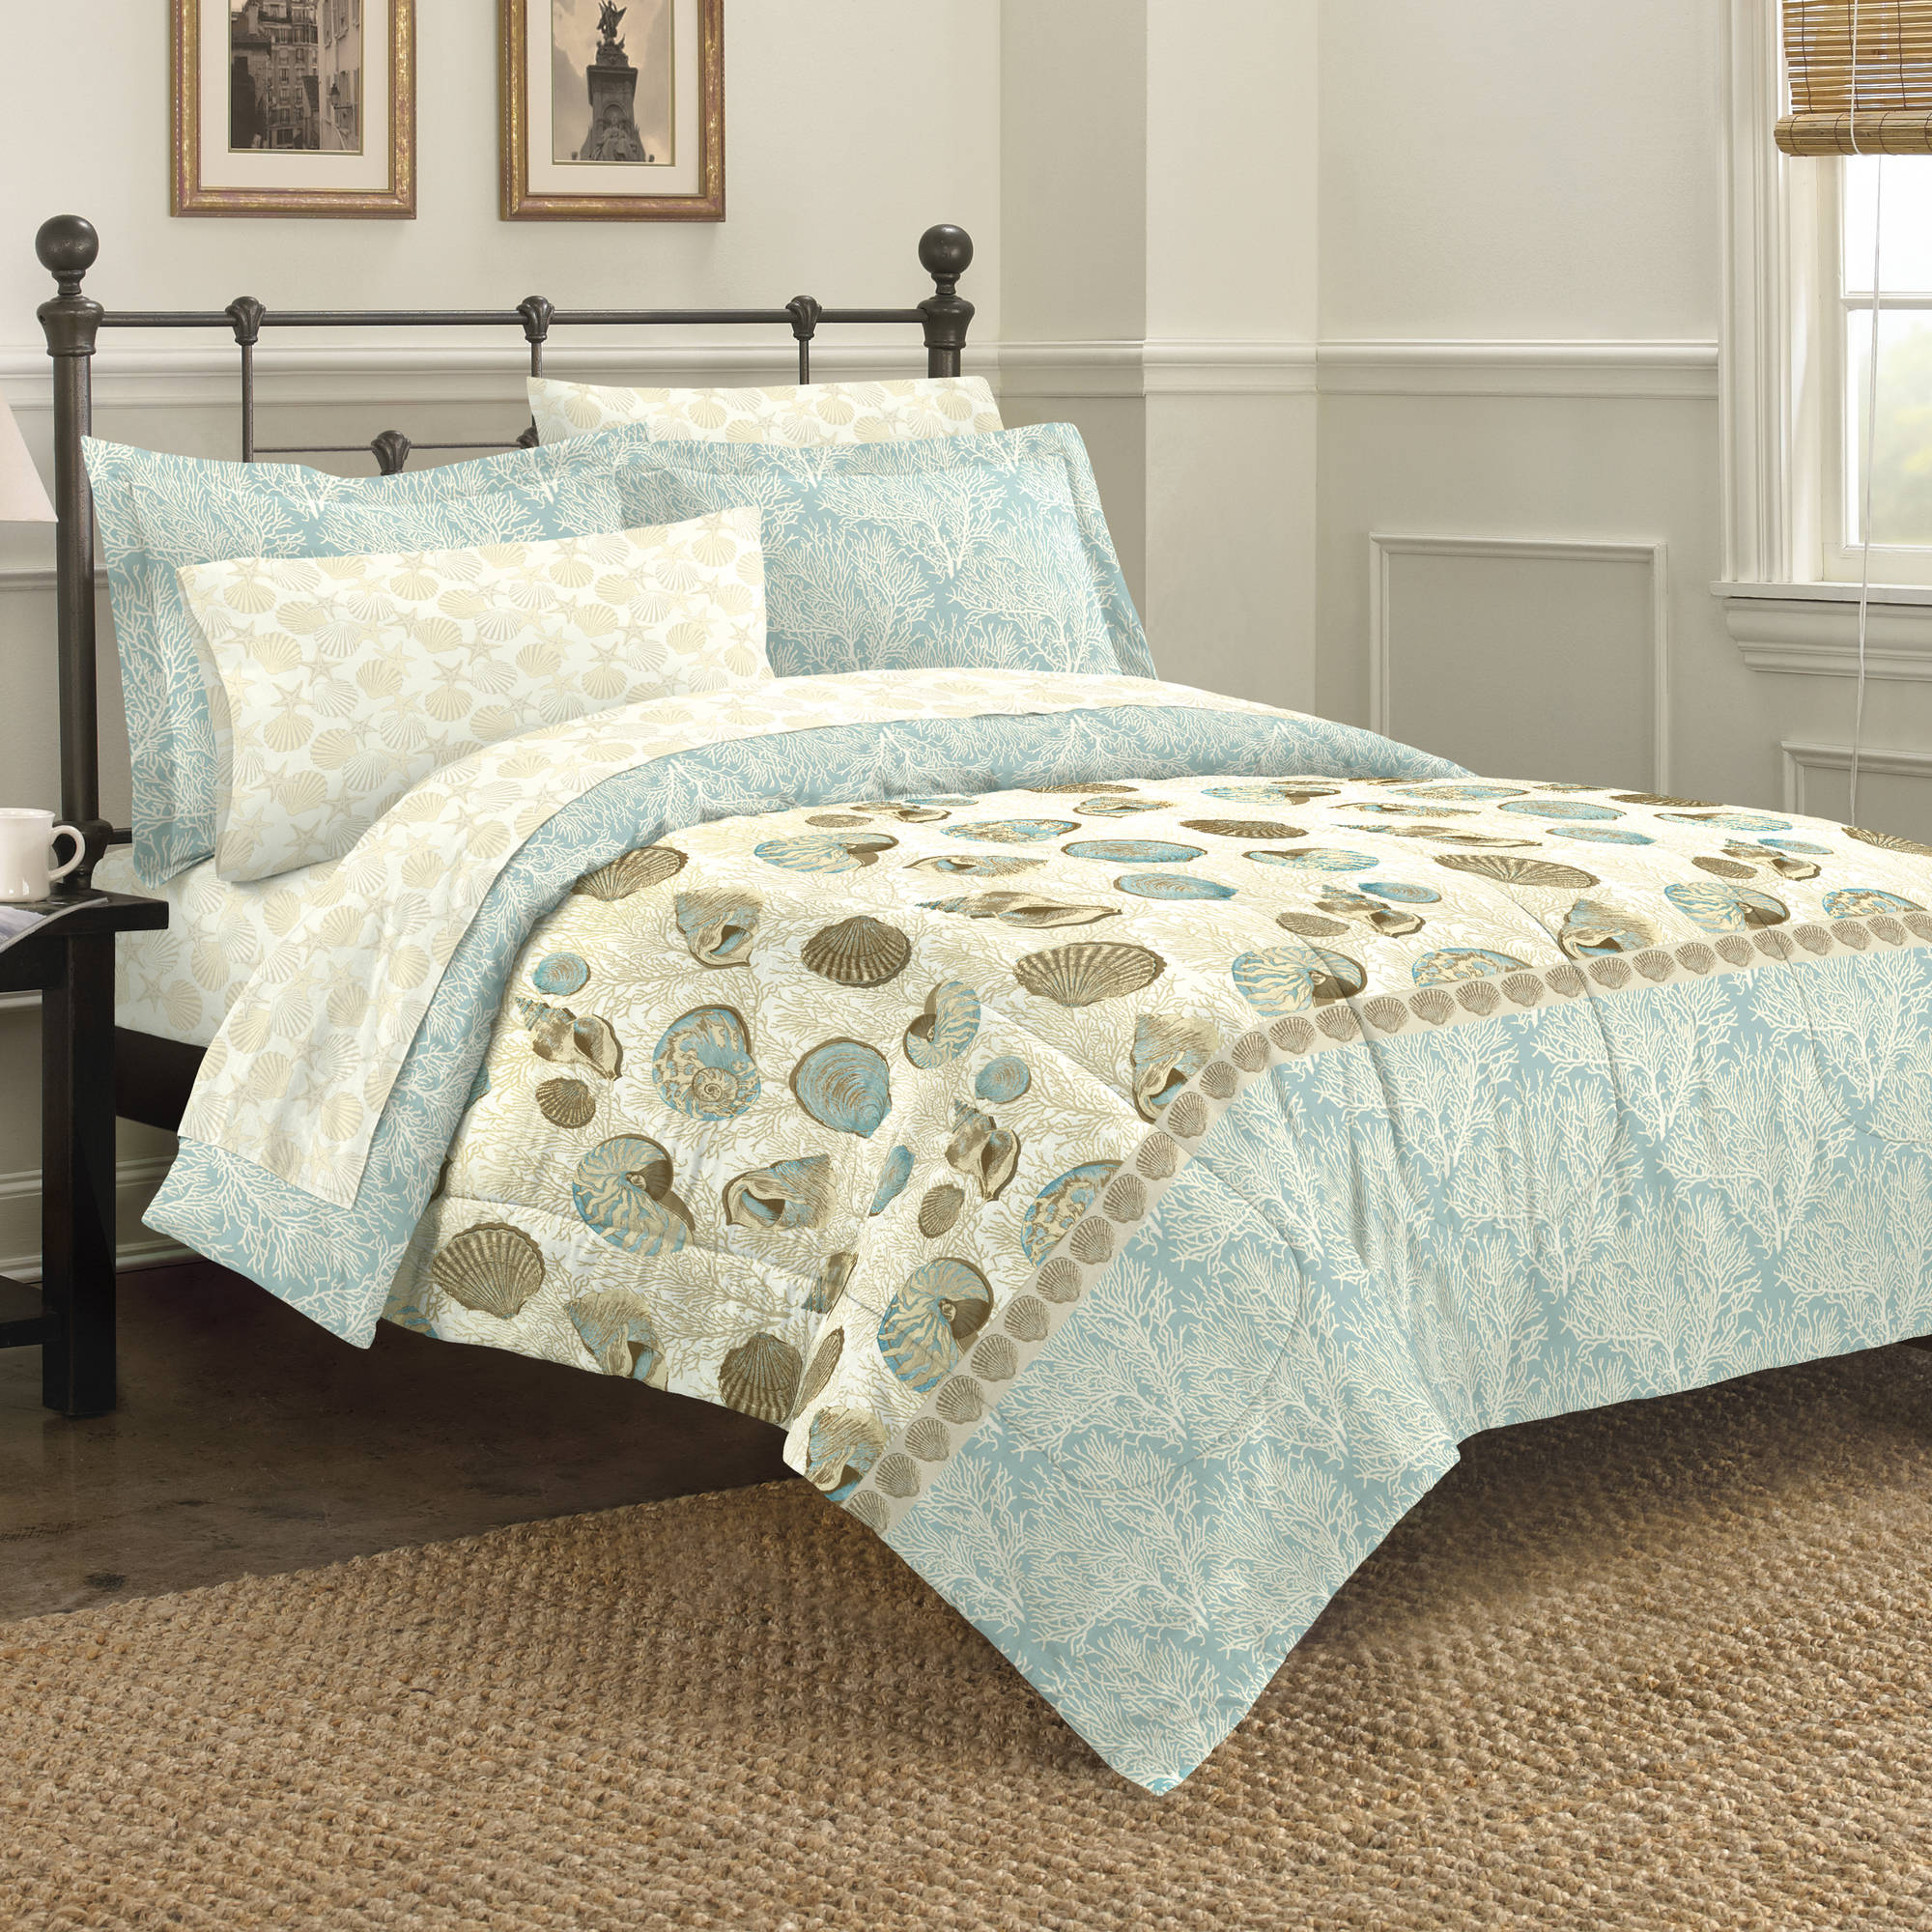 Discoveries Sea Breeze Comforter, Sham and Sheet Set